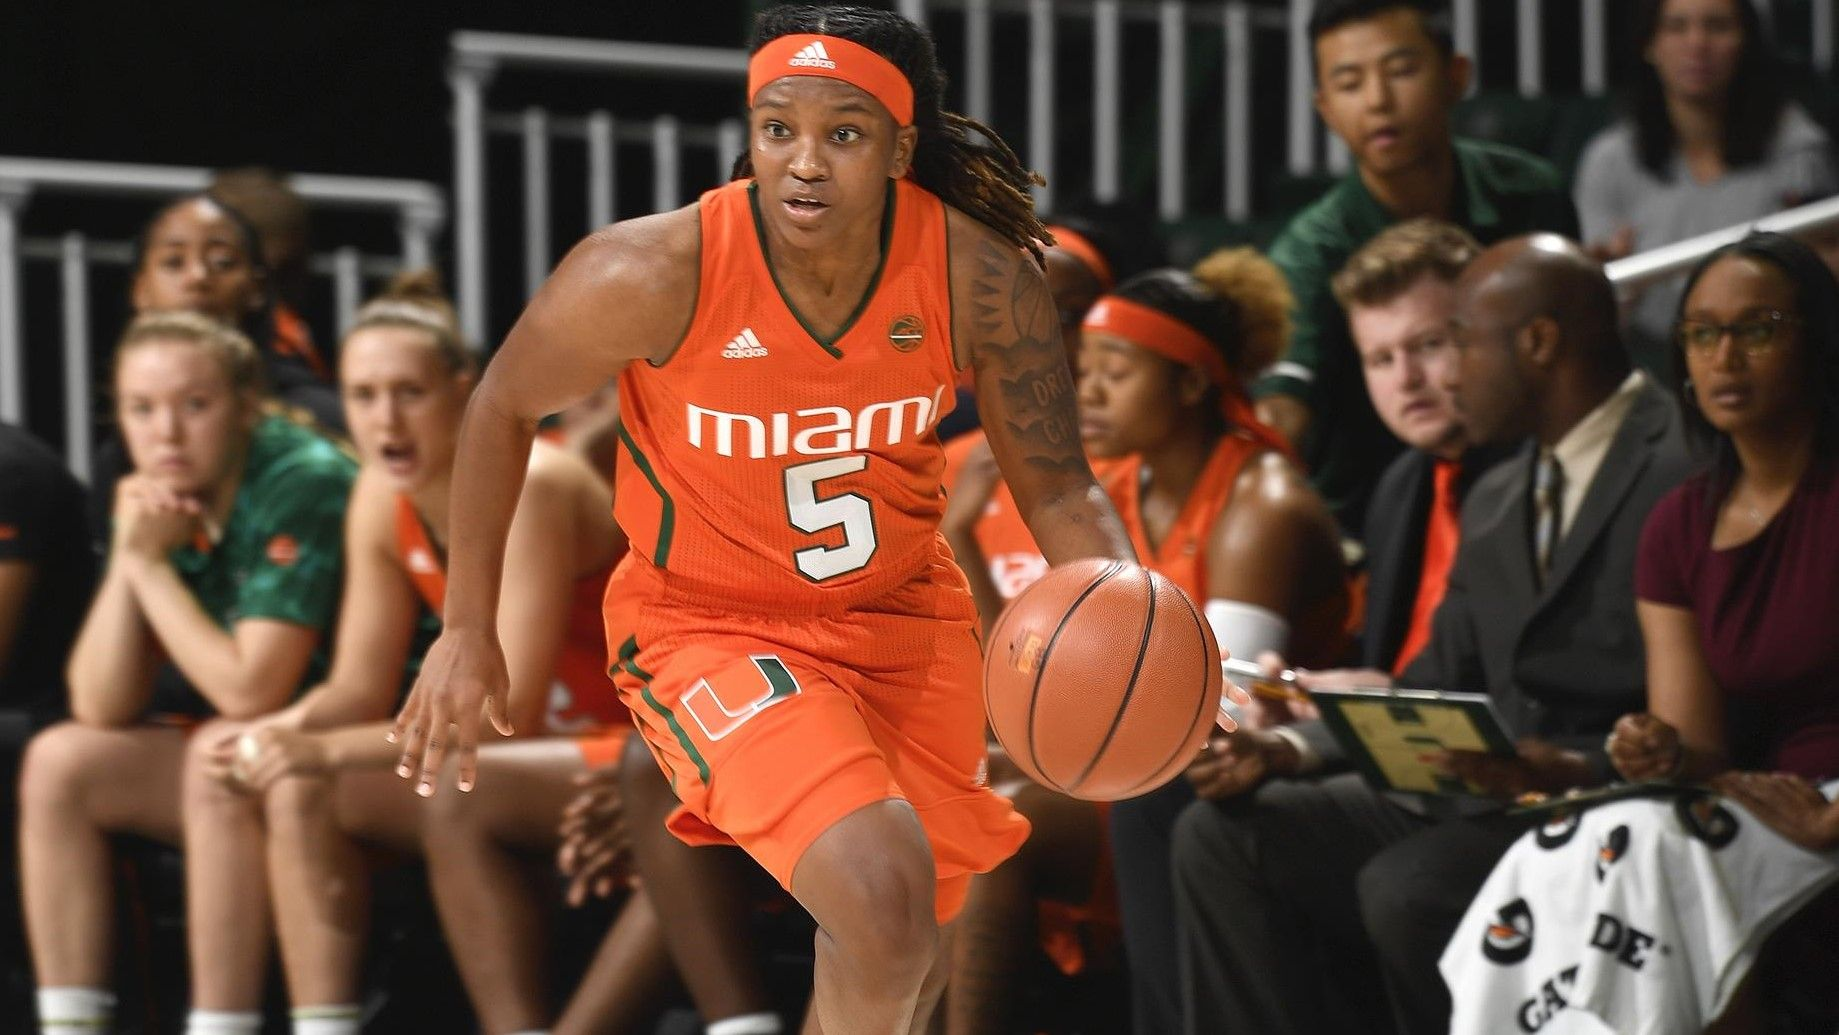 WBB Tops Wake Forest, 72-57, in ACC Road Opener